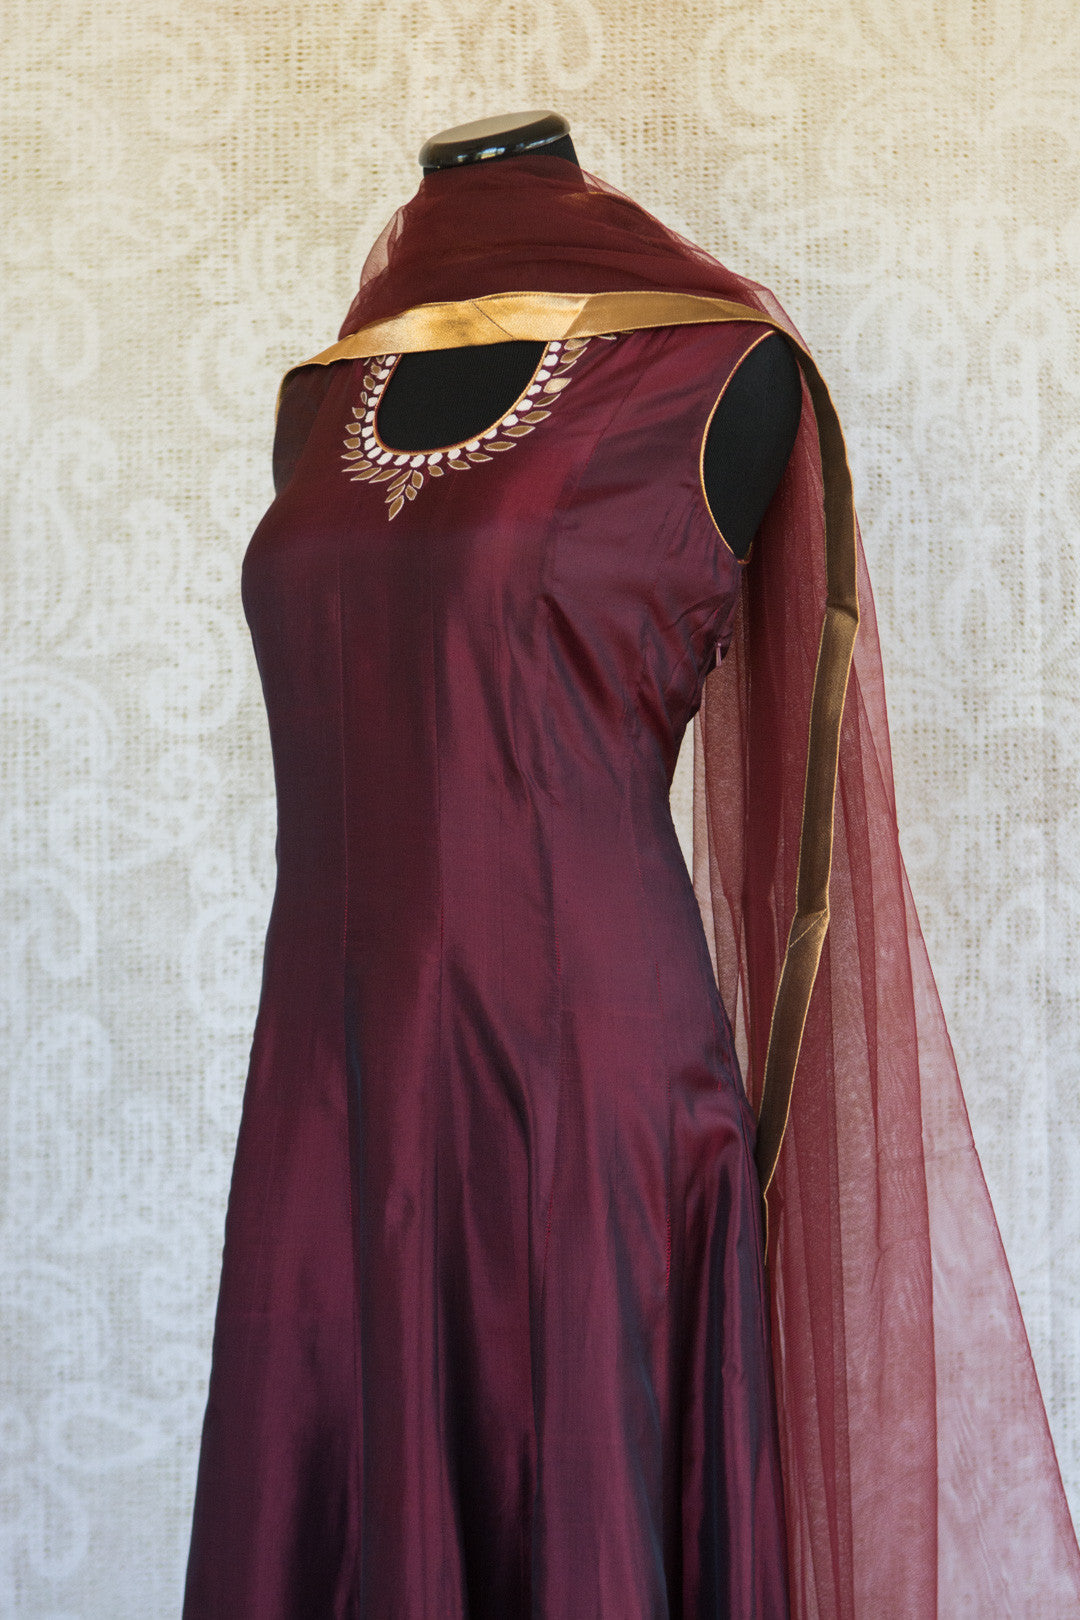 501085-suit-sleeveless-maroon-gold-embroidery-scarf-top-view-3